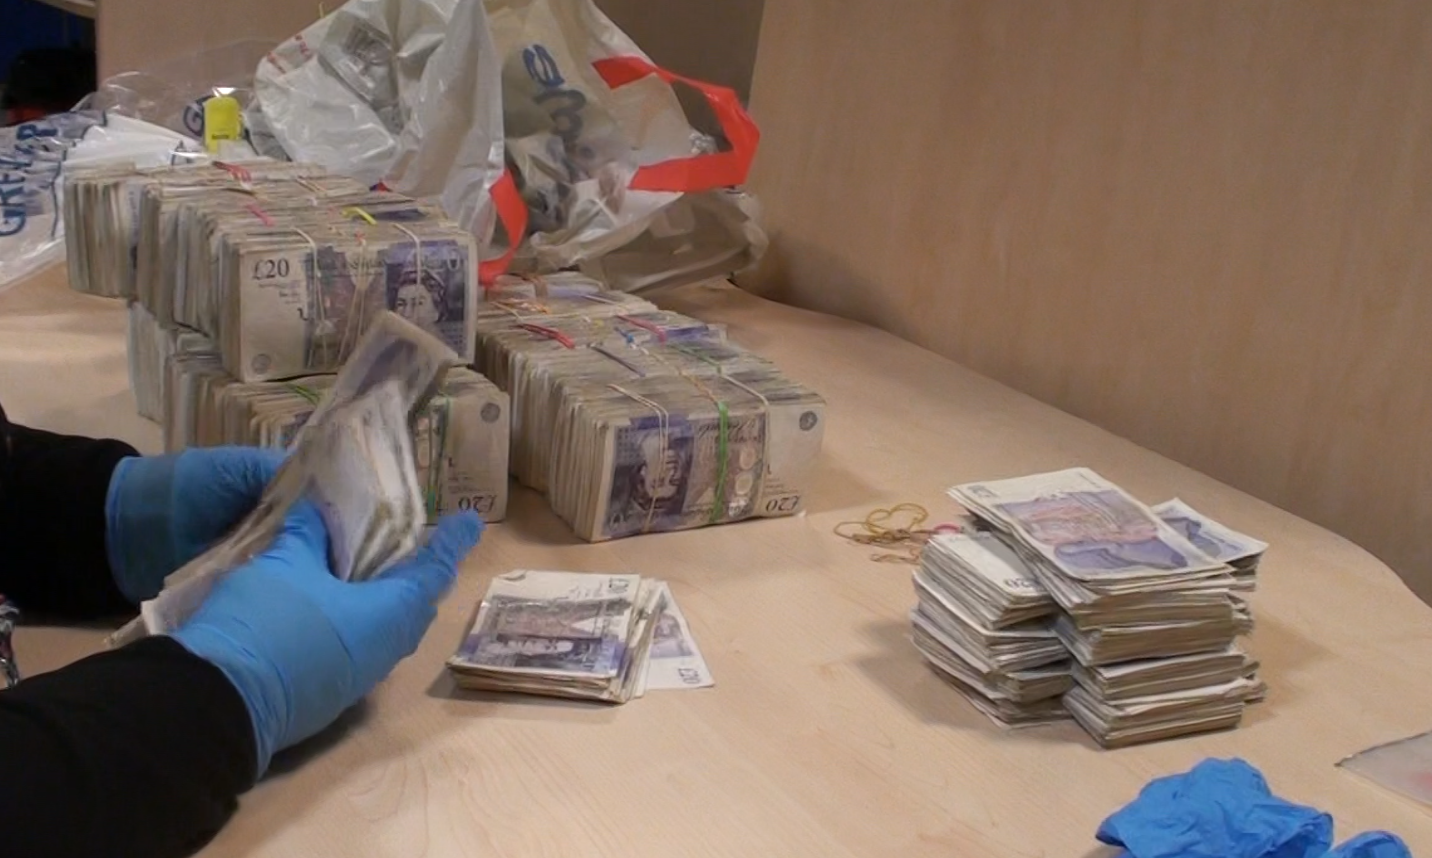 A National Crime Agency officer counts some of the confiscated cash.